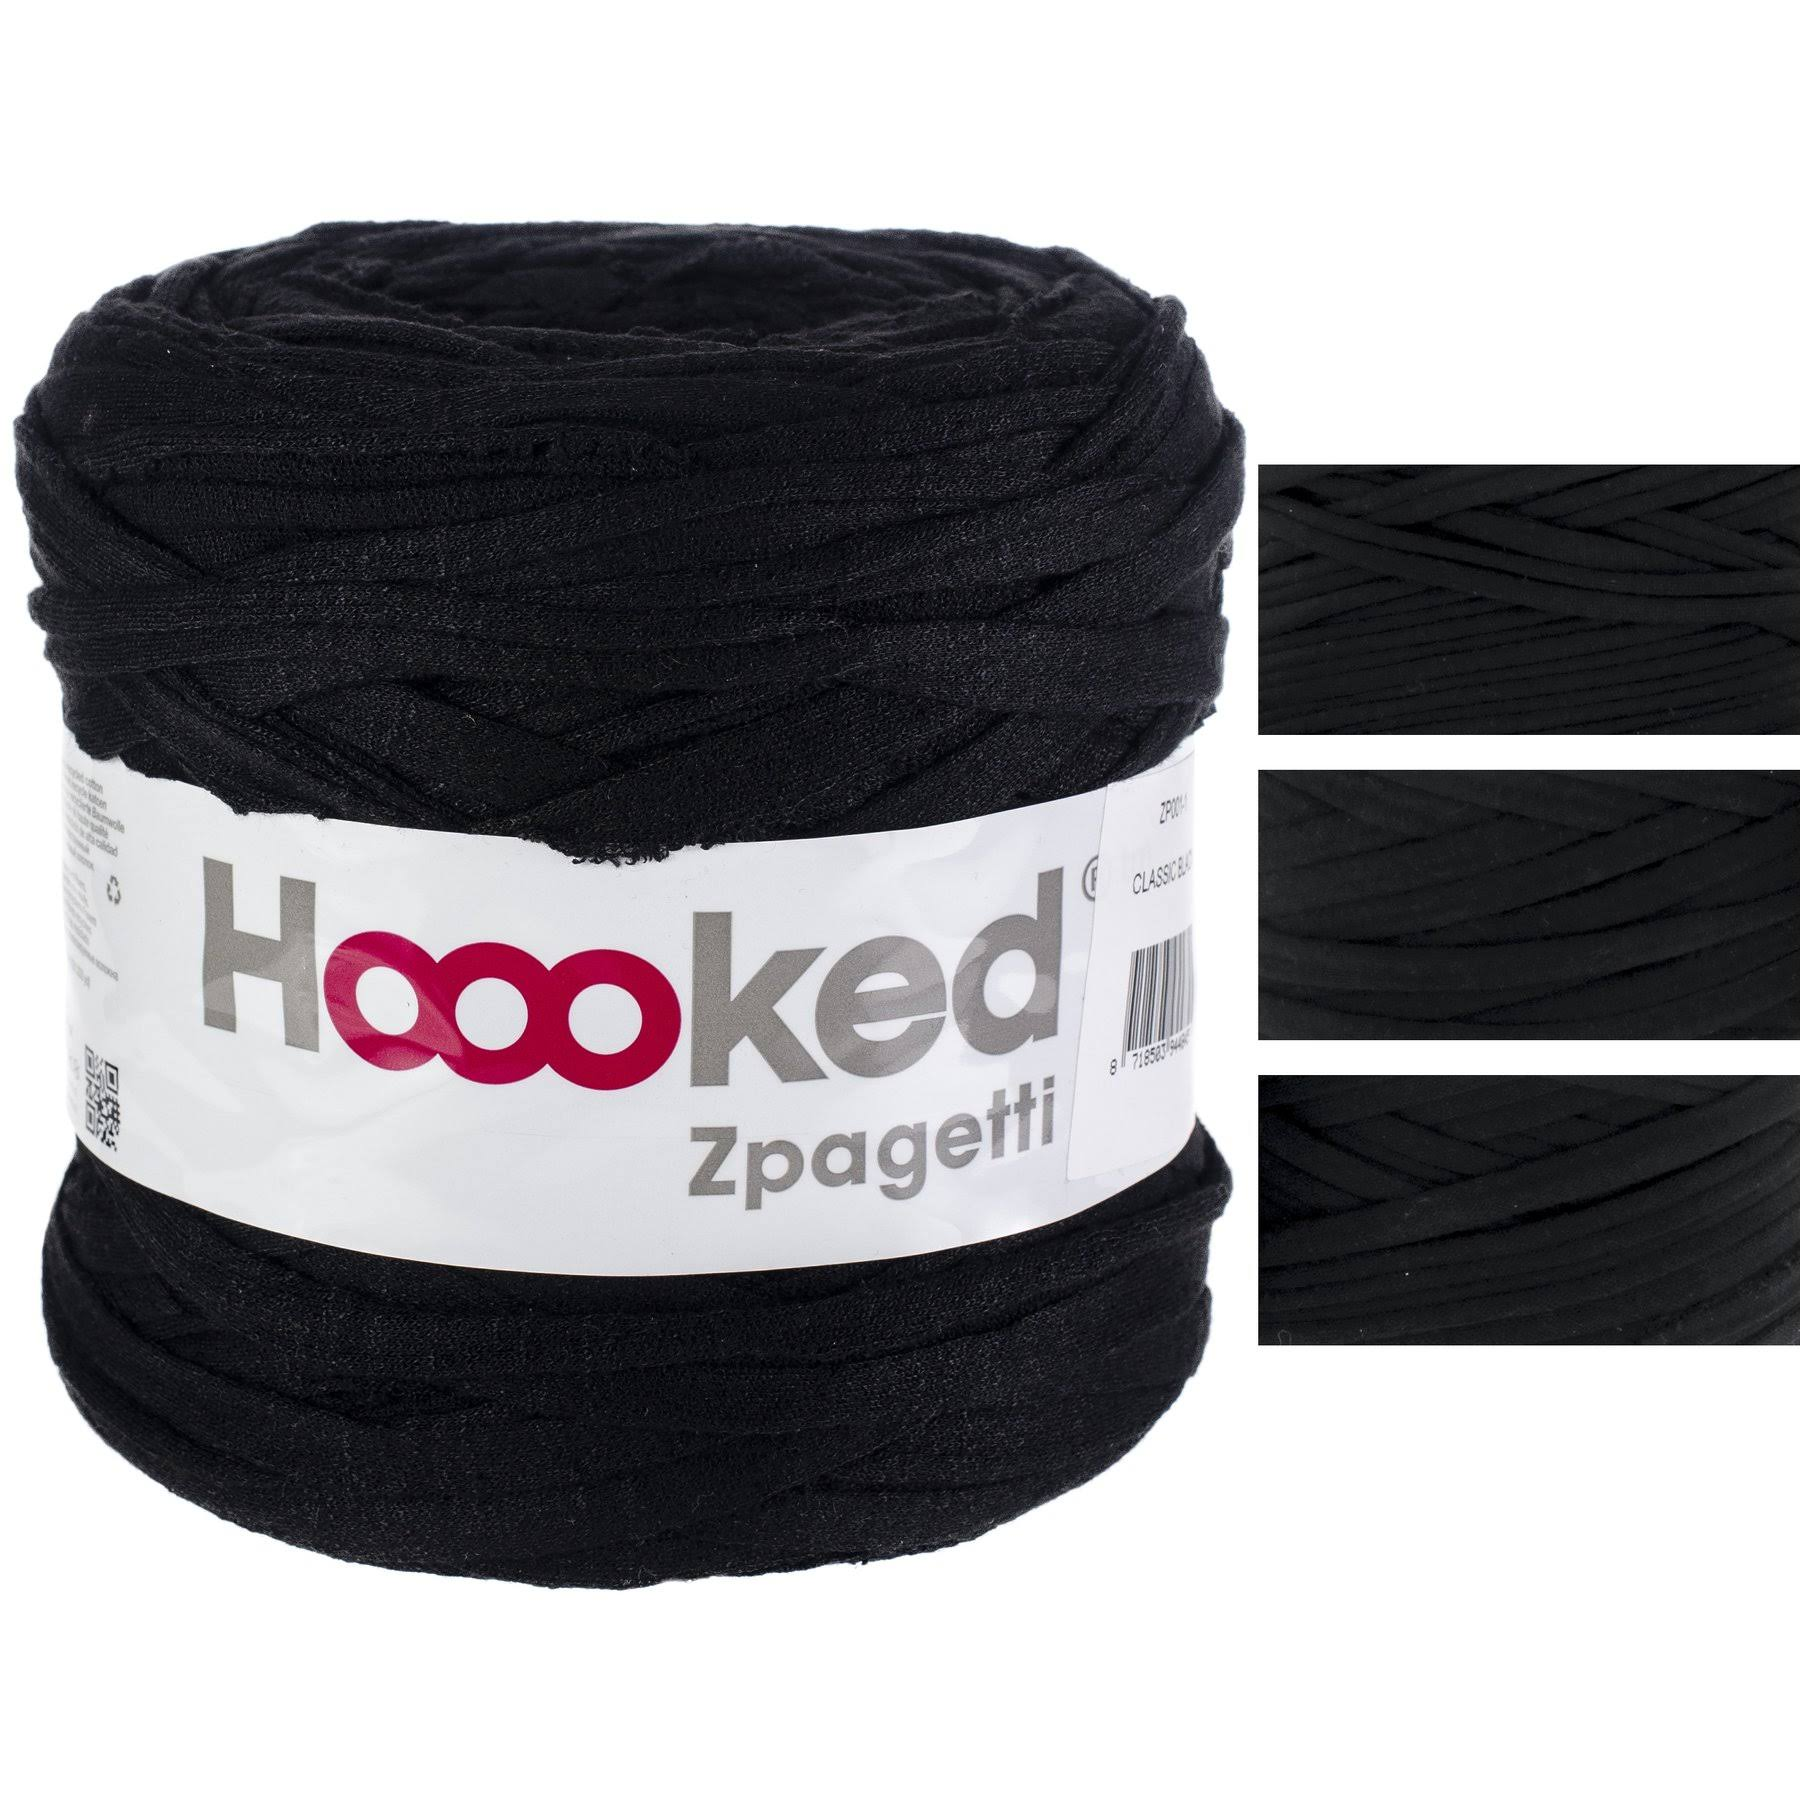 Hoooked Zpagetti Yarn Classic Black - Pure Black Shades